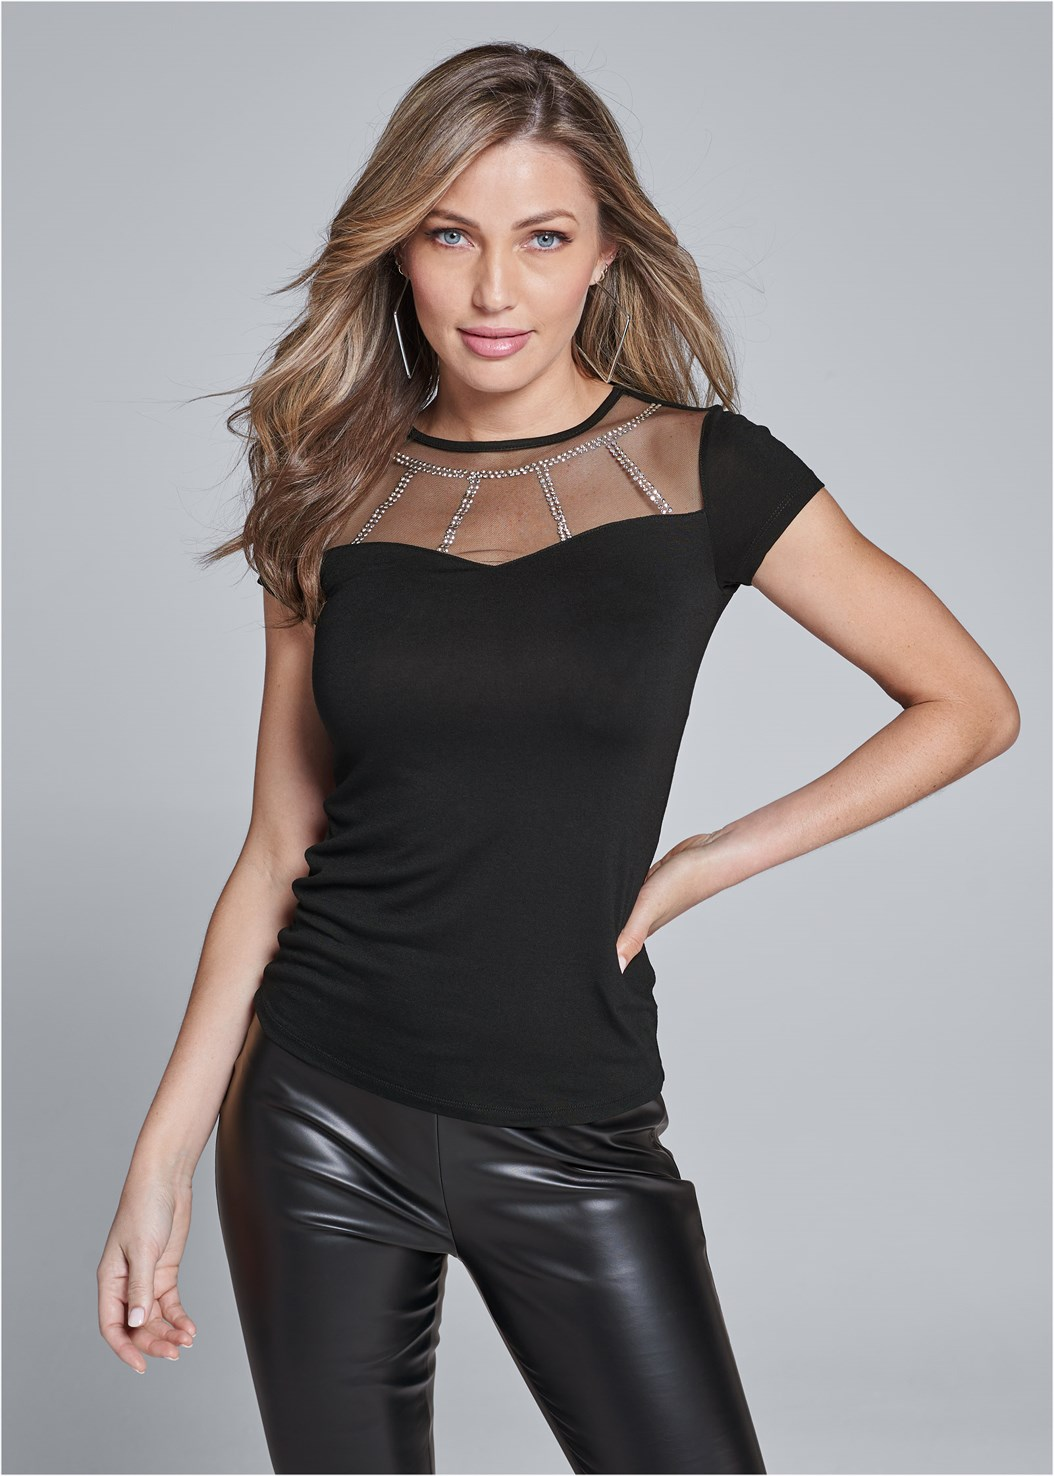 Mesh Detail Top,Faux Leather Leggings,Kissable Convertible Bra,Ankle Strap Heels,Square Hoop Earrings